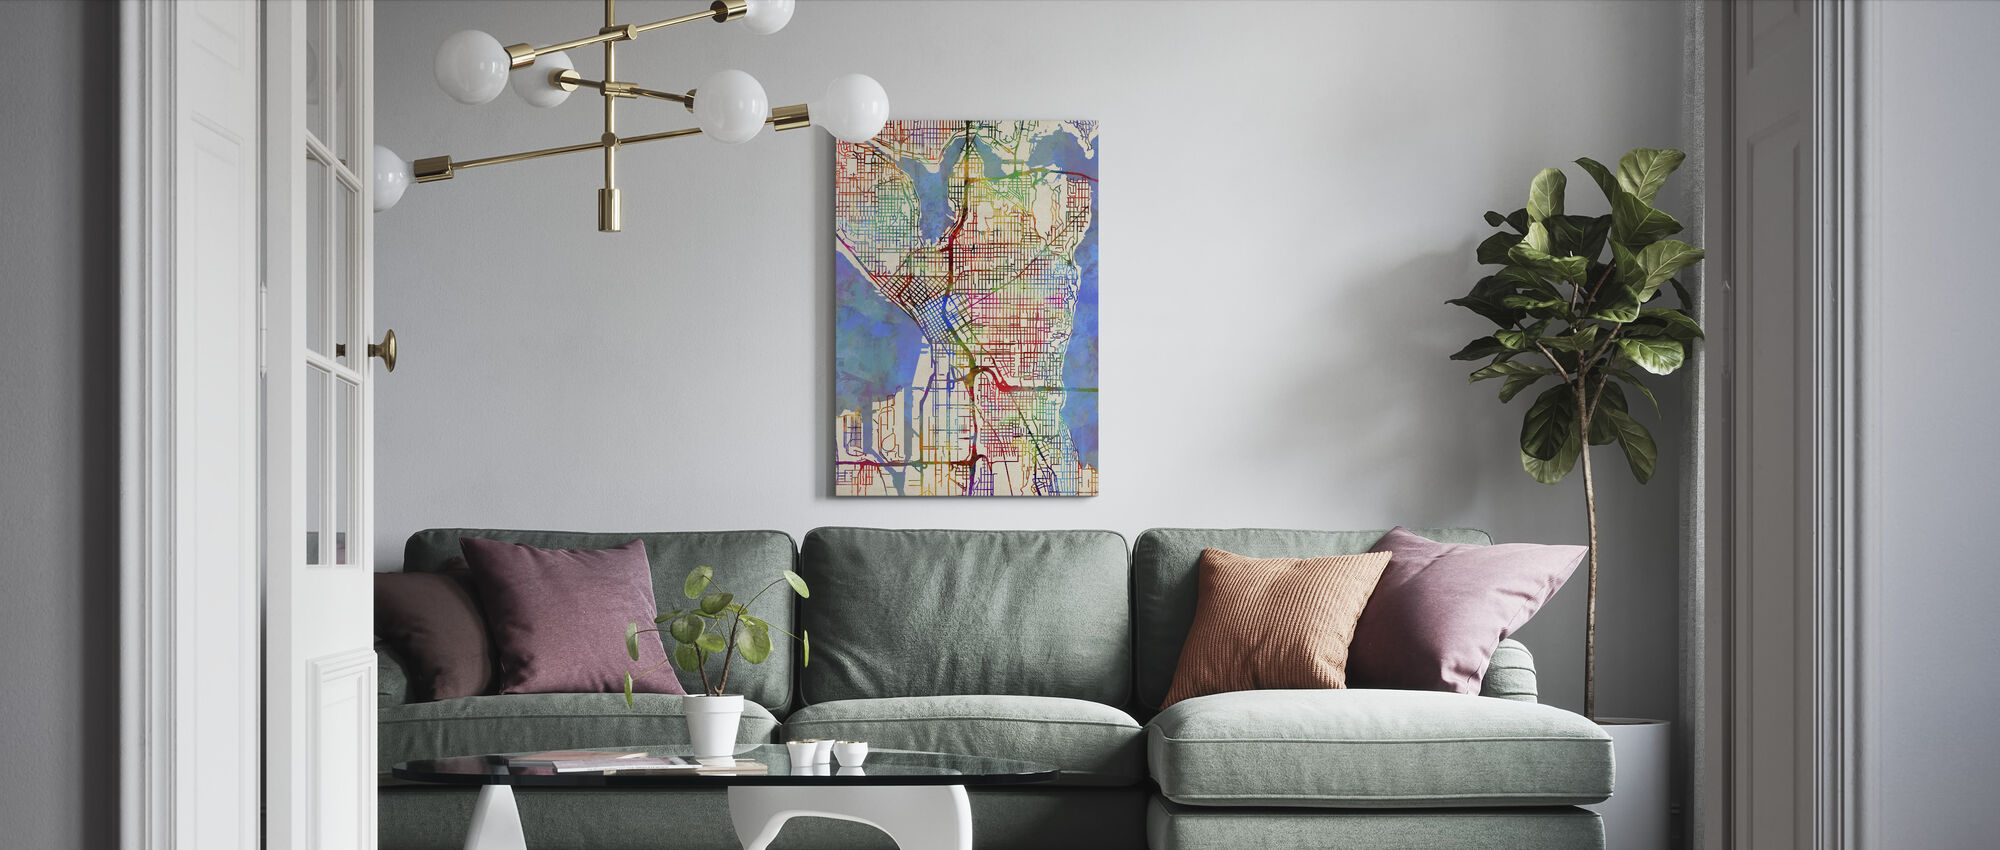 Seattle Washington Street Map - Canvas print - Living Room